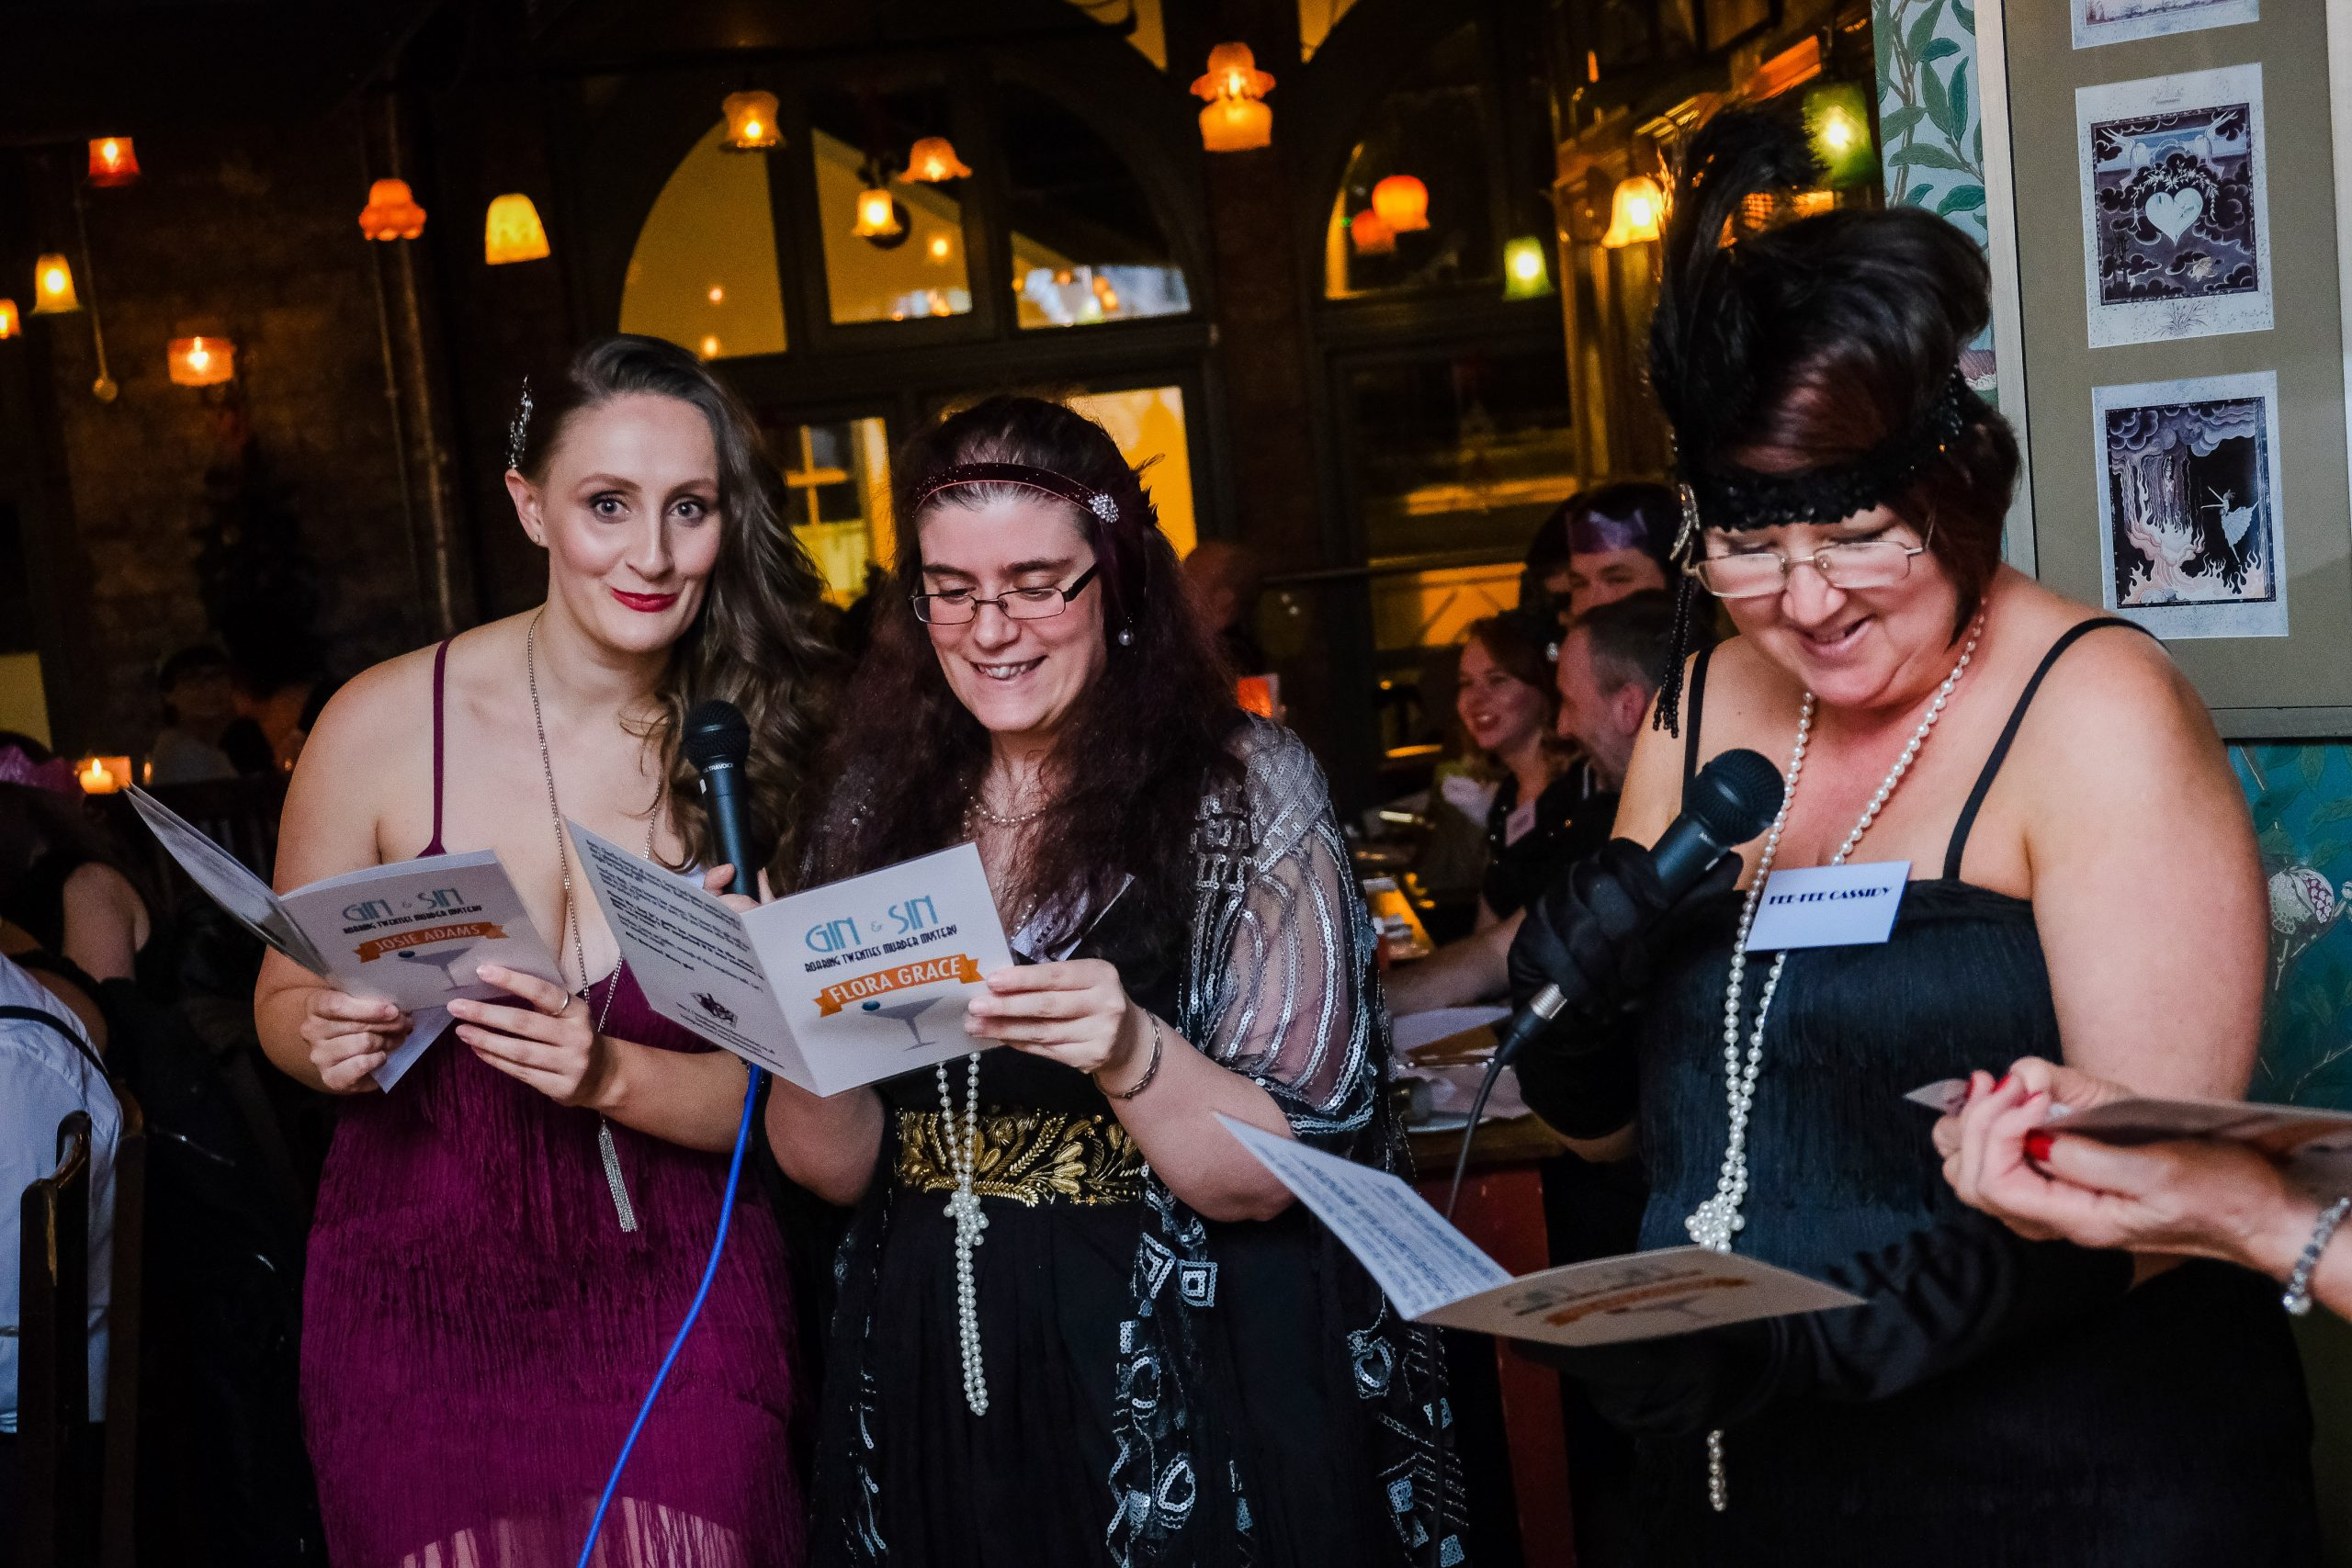 Party guests reading out murder mystery scripts